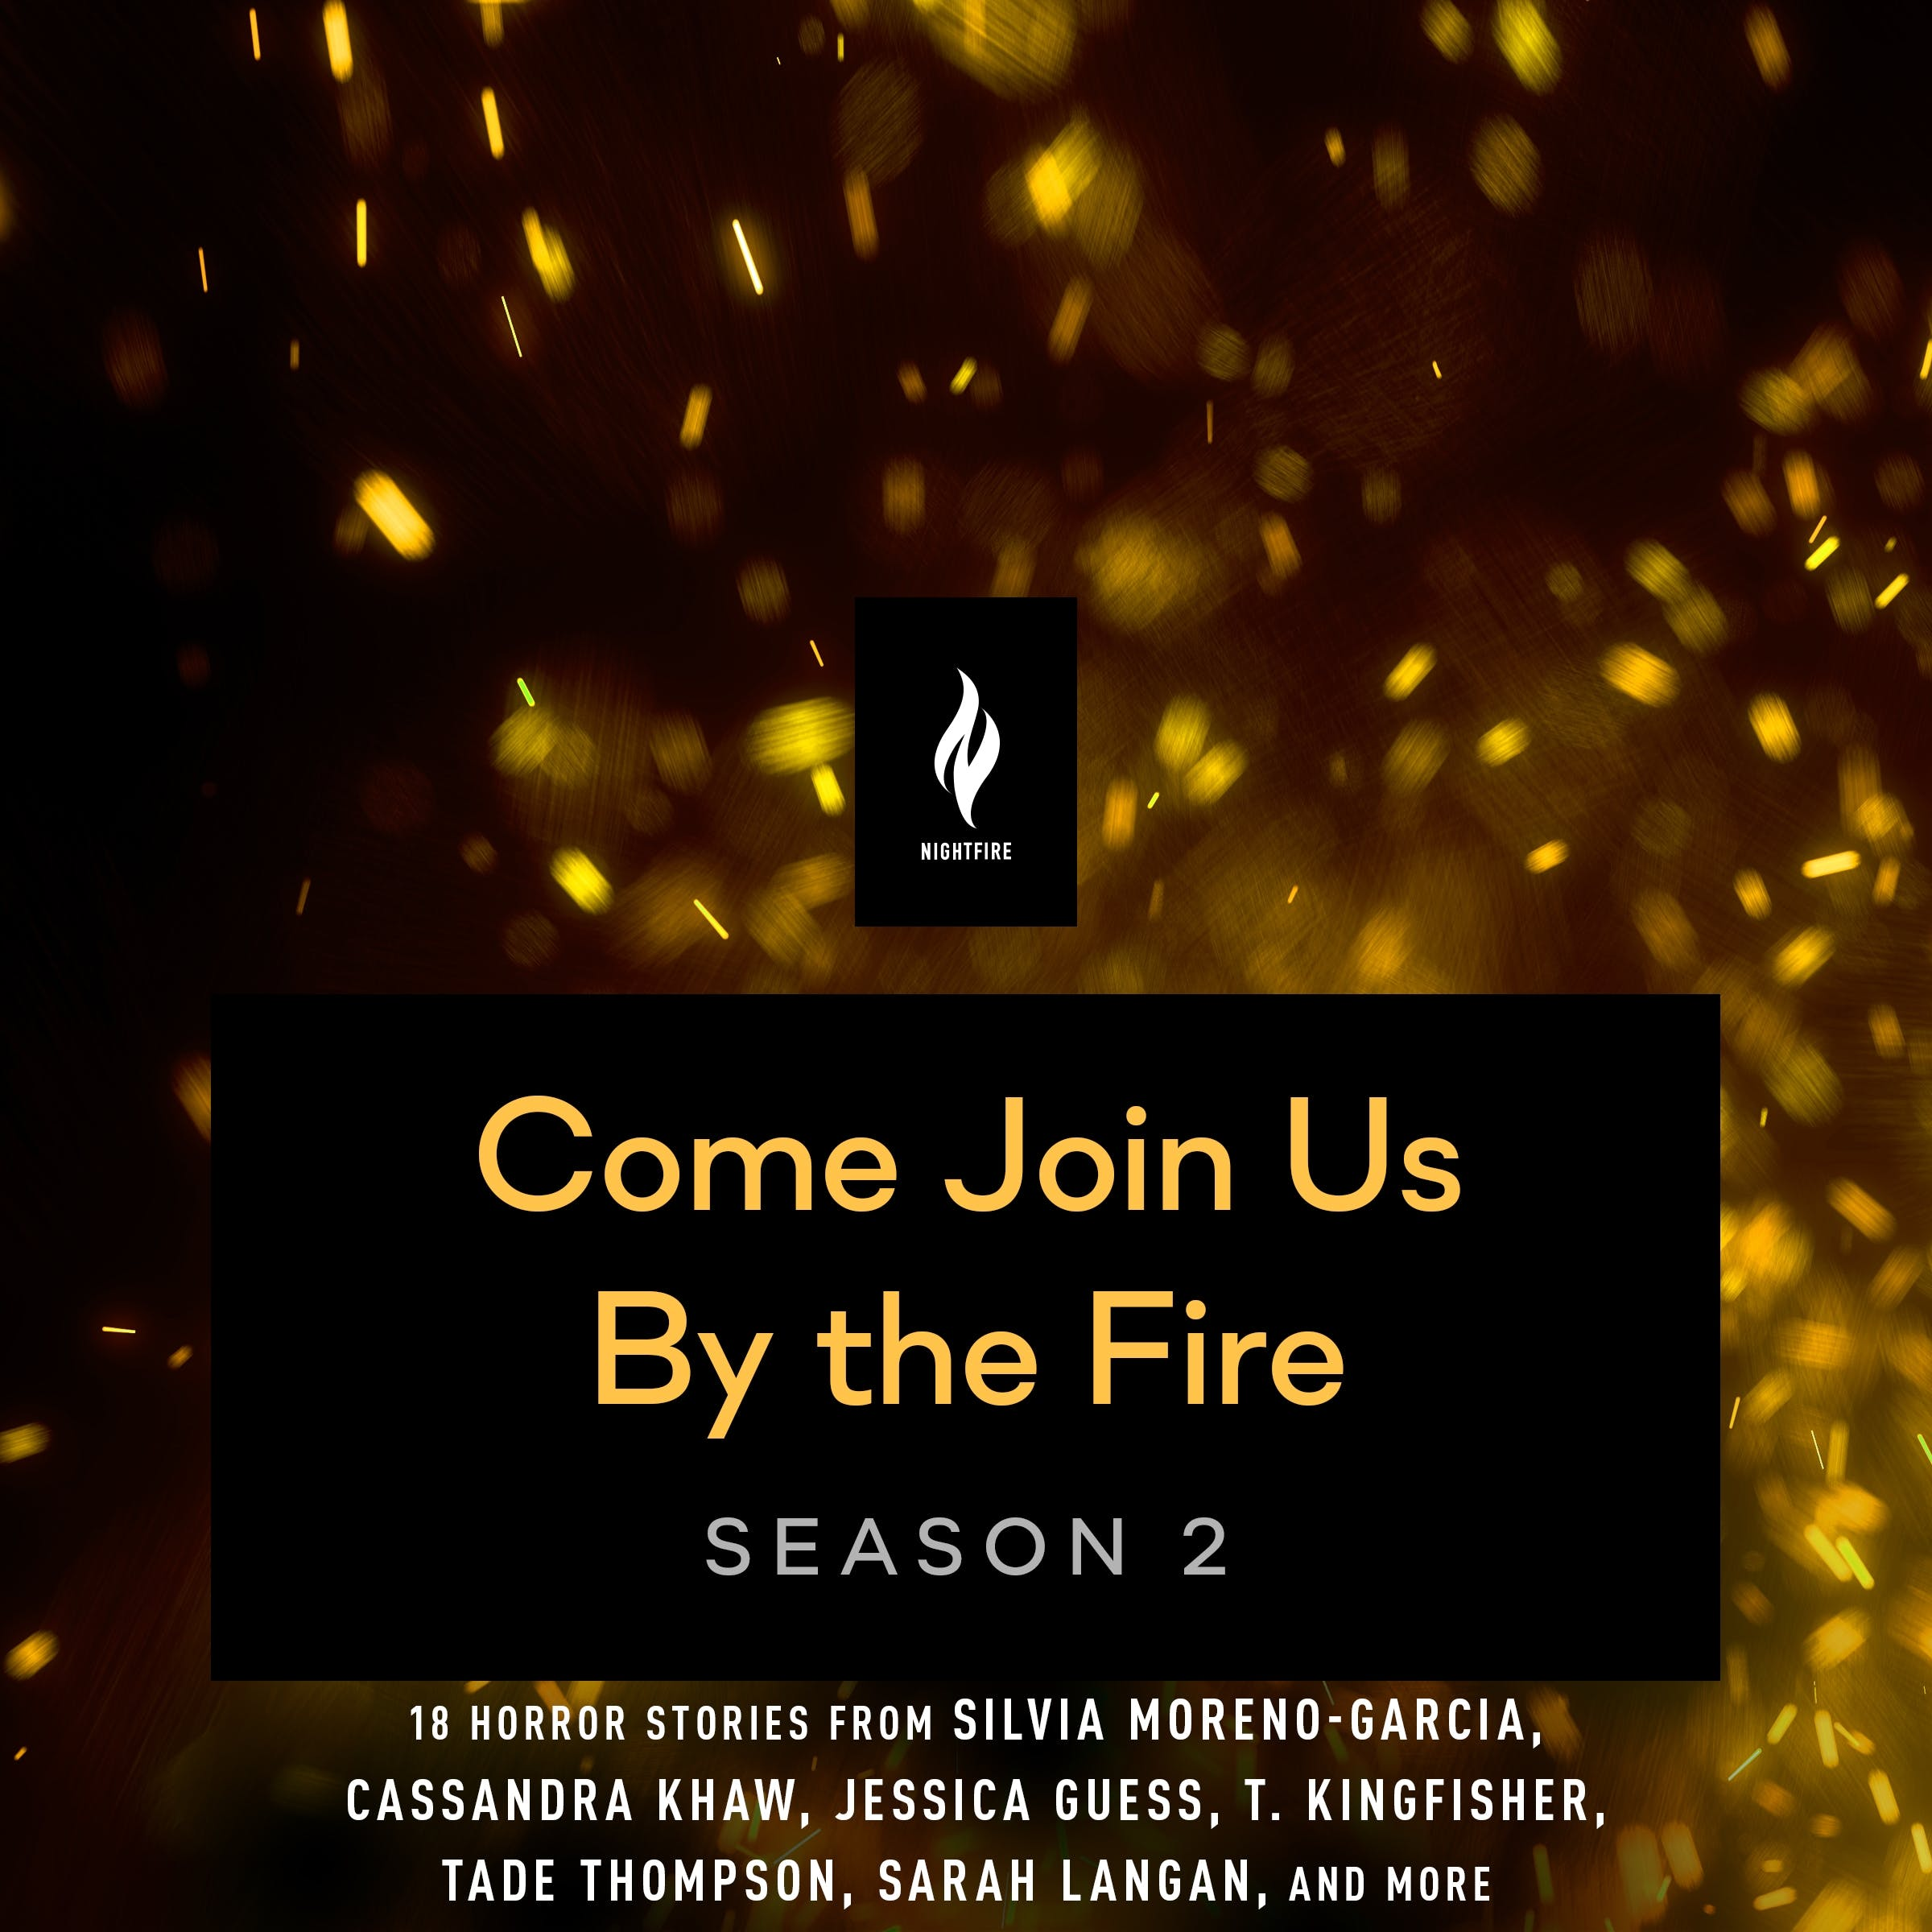 Image of Come Join Us By The Fire, Season 2